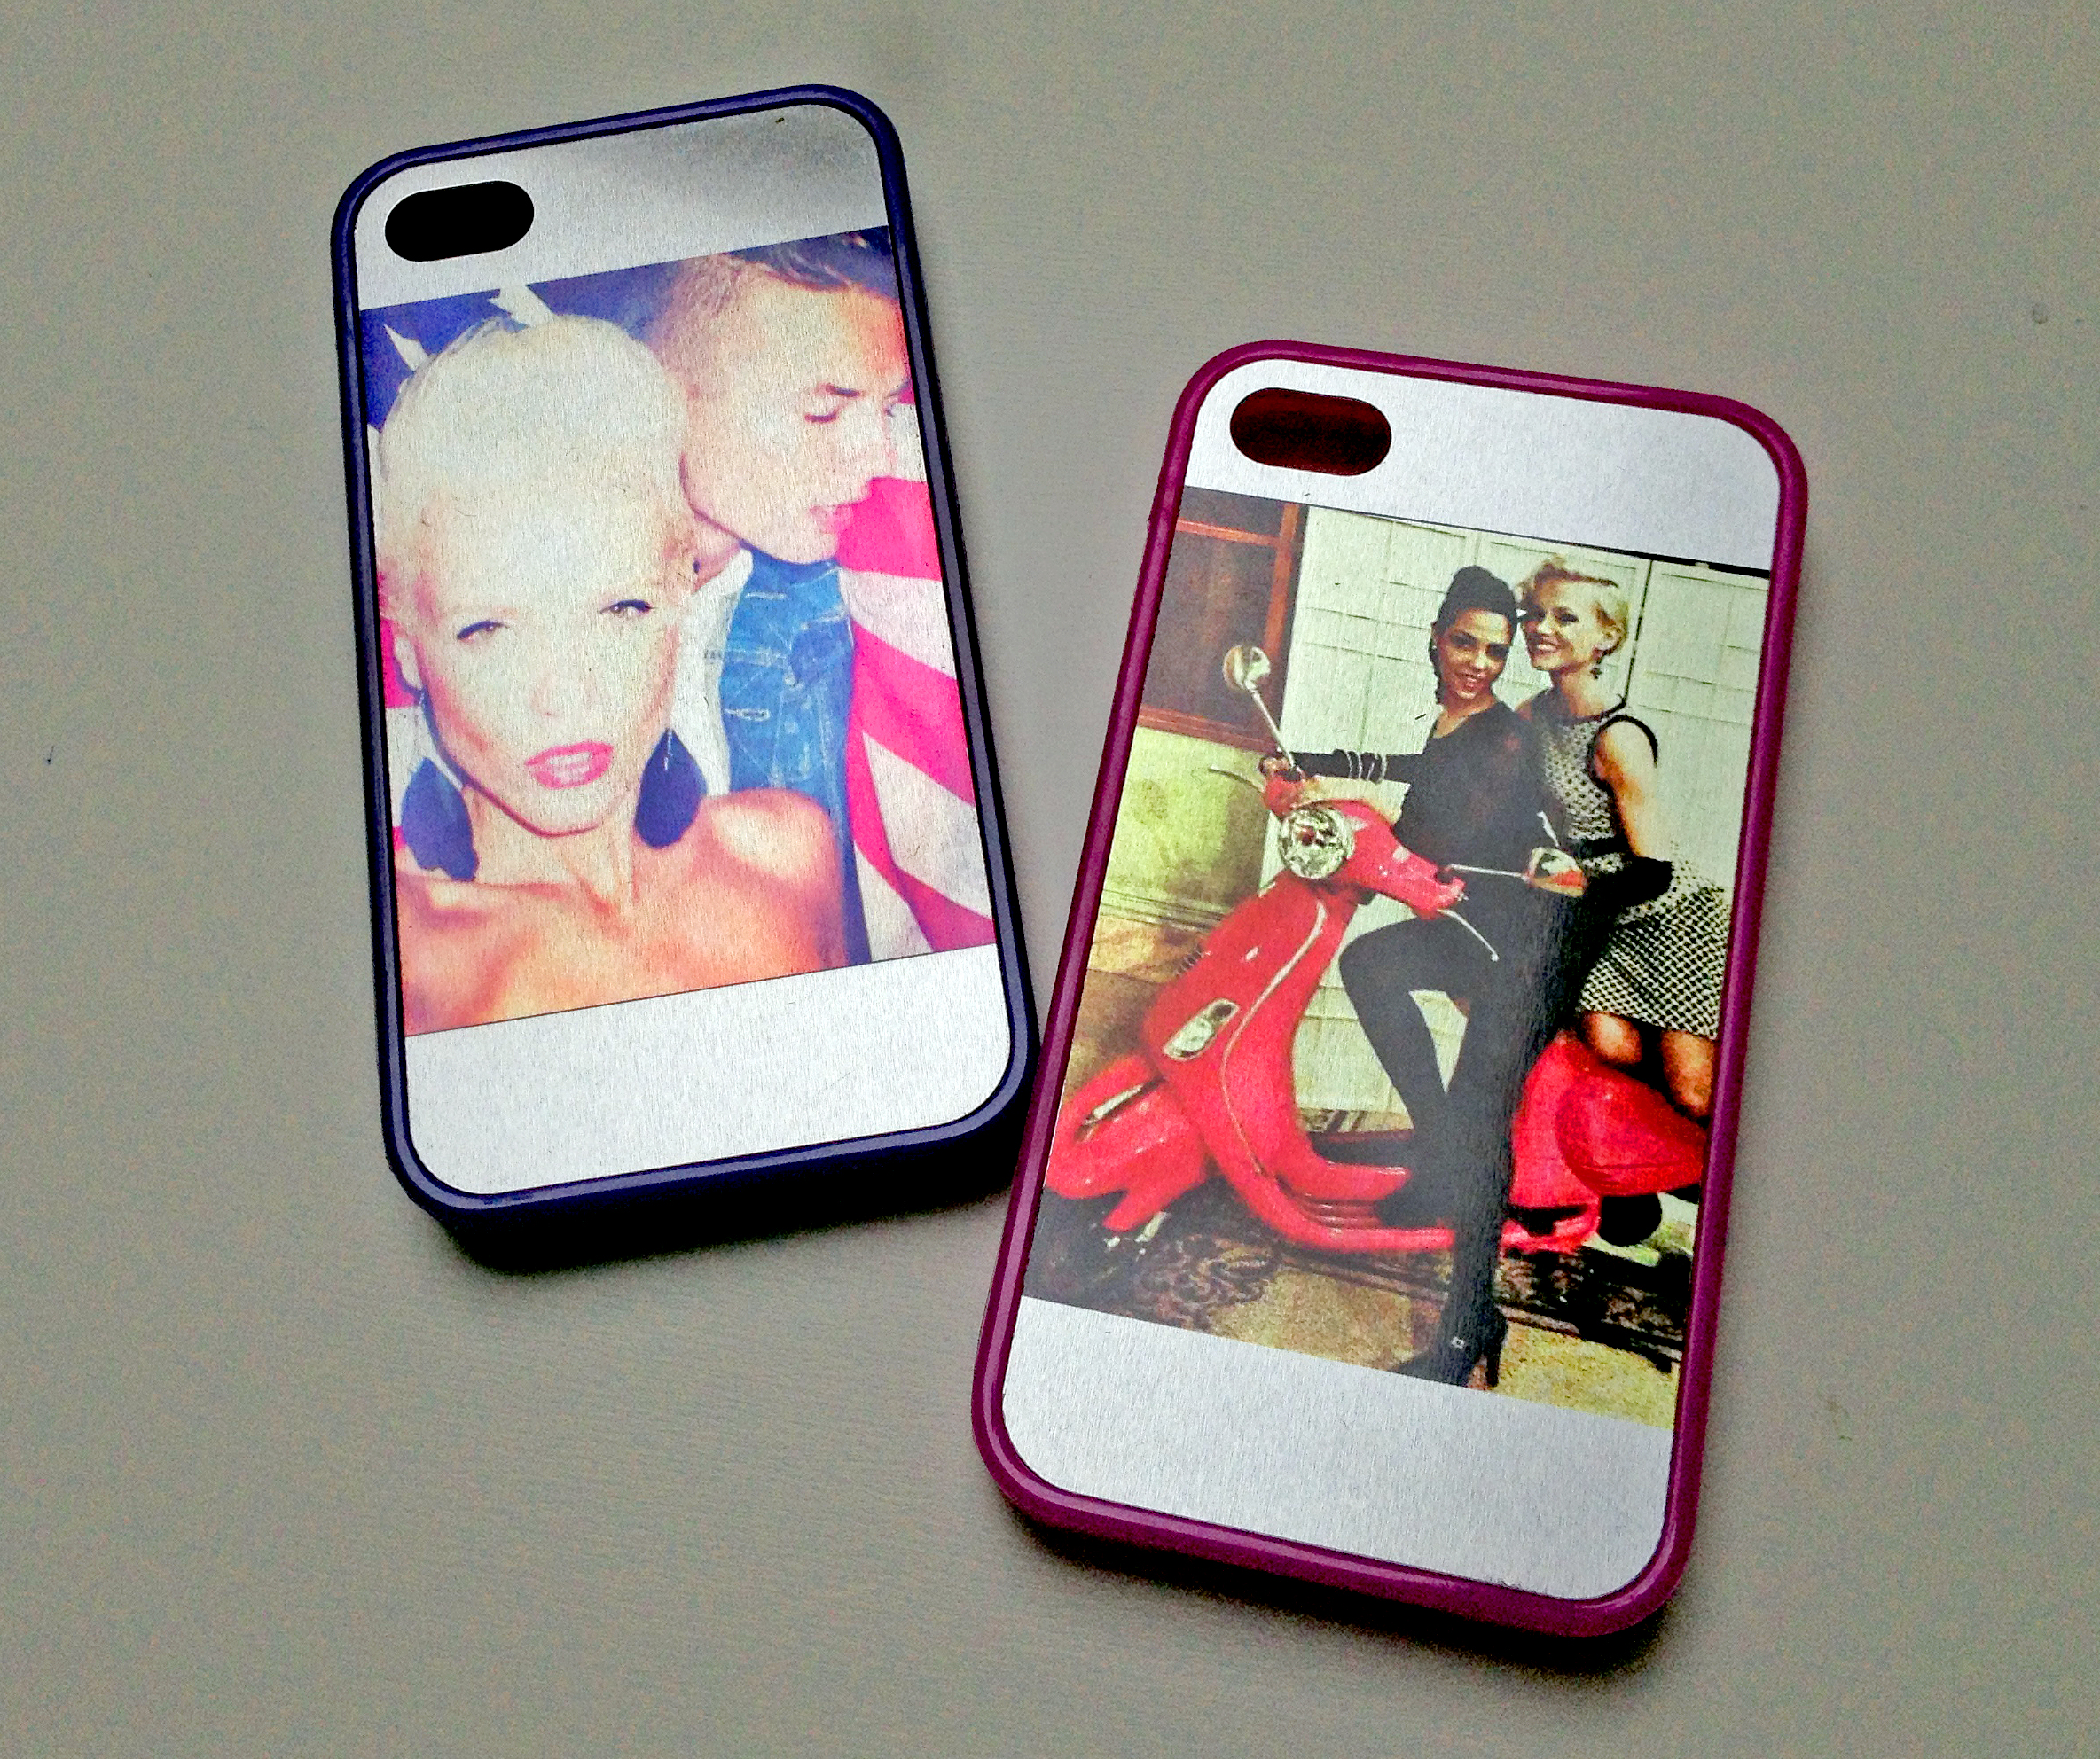 jana-tomas-alzbeta-betty-ferencova-jozef-krovina-iphone-cover